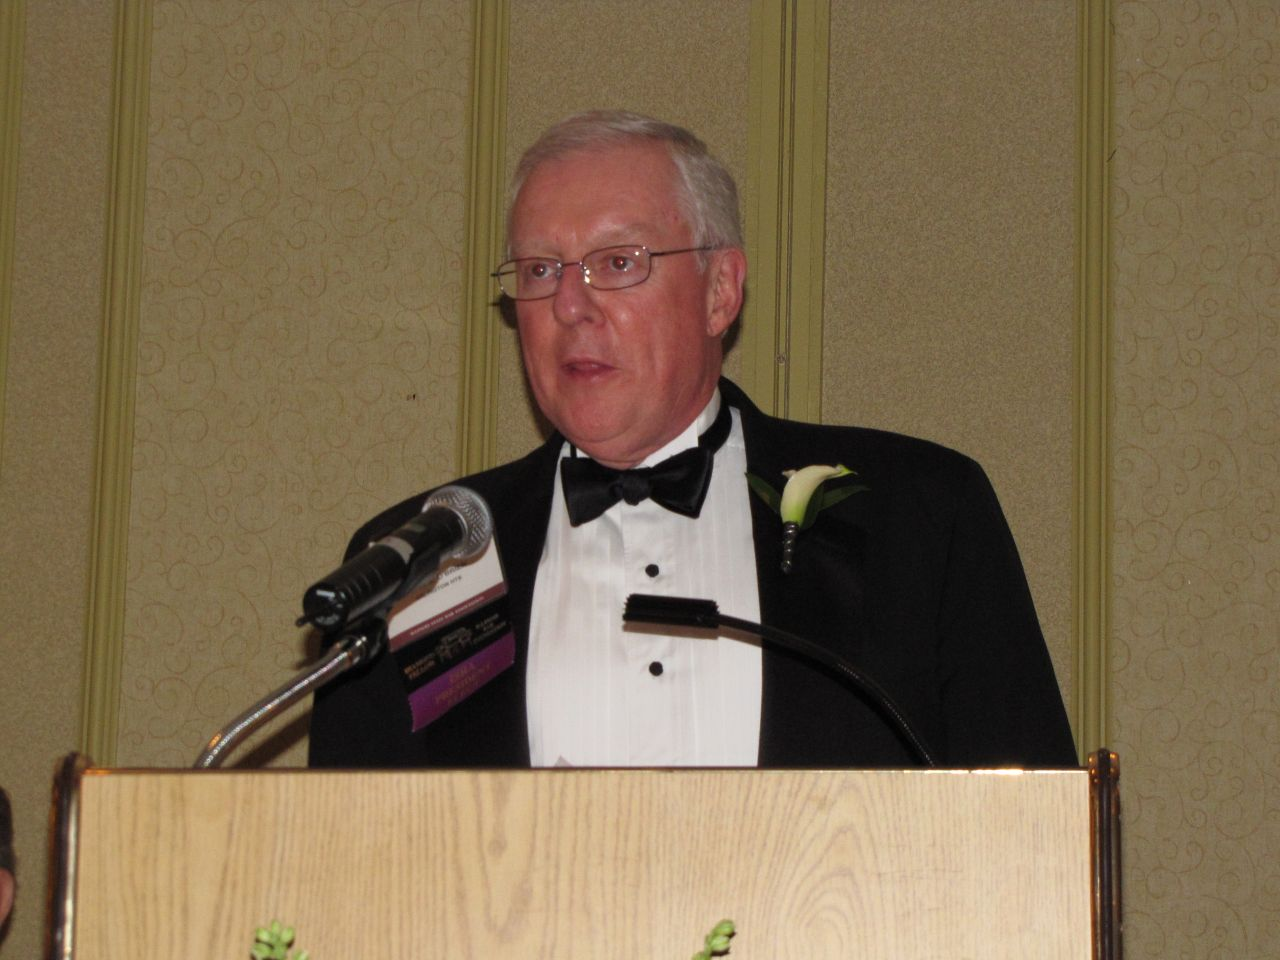 New ISBA President John O'Brien